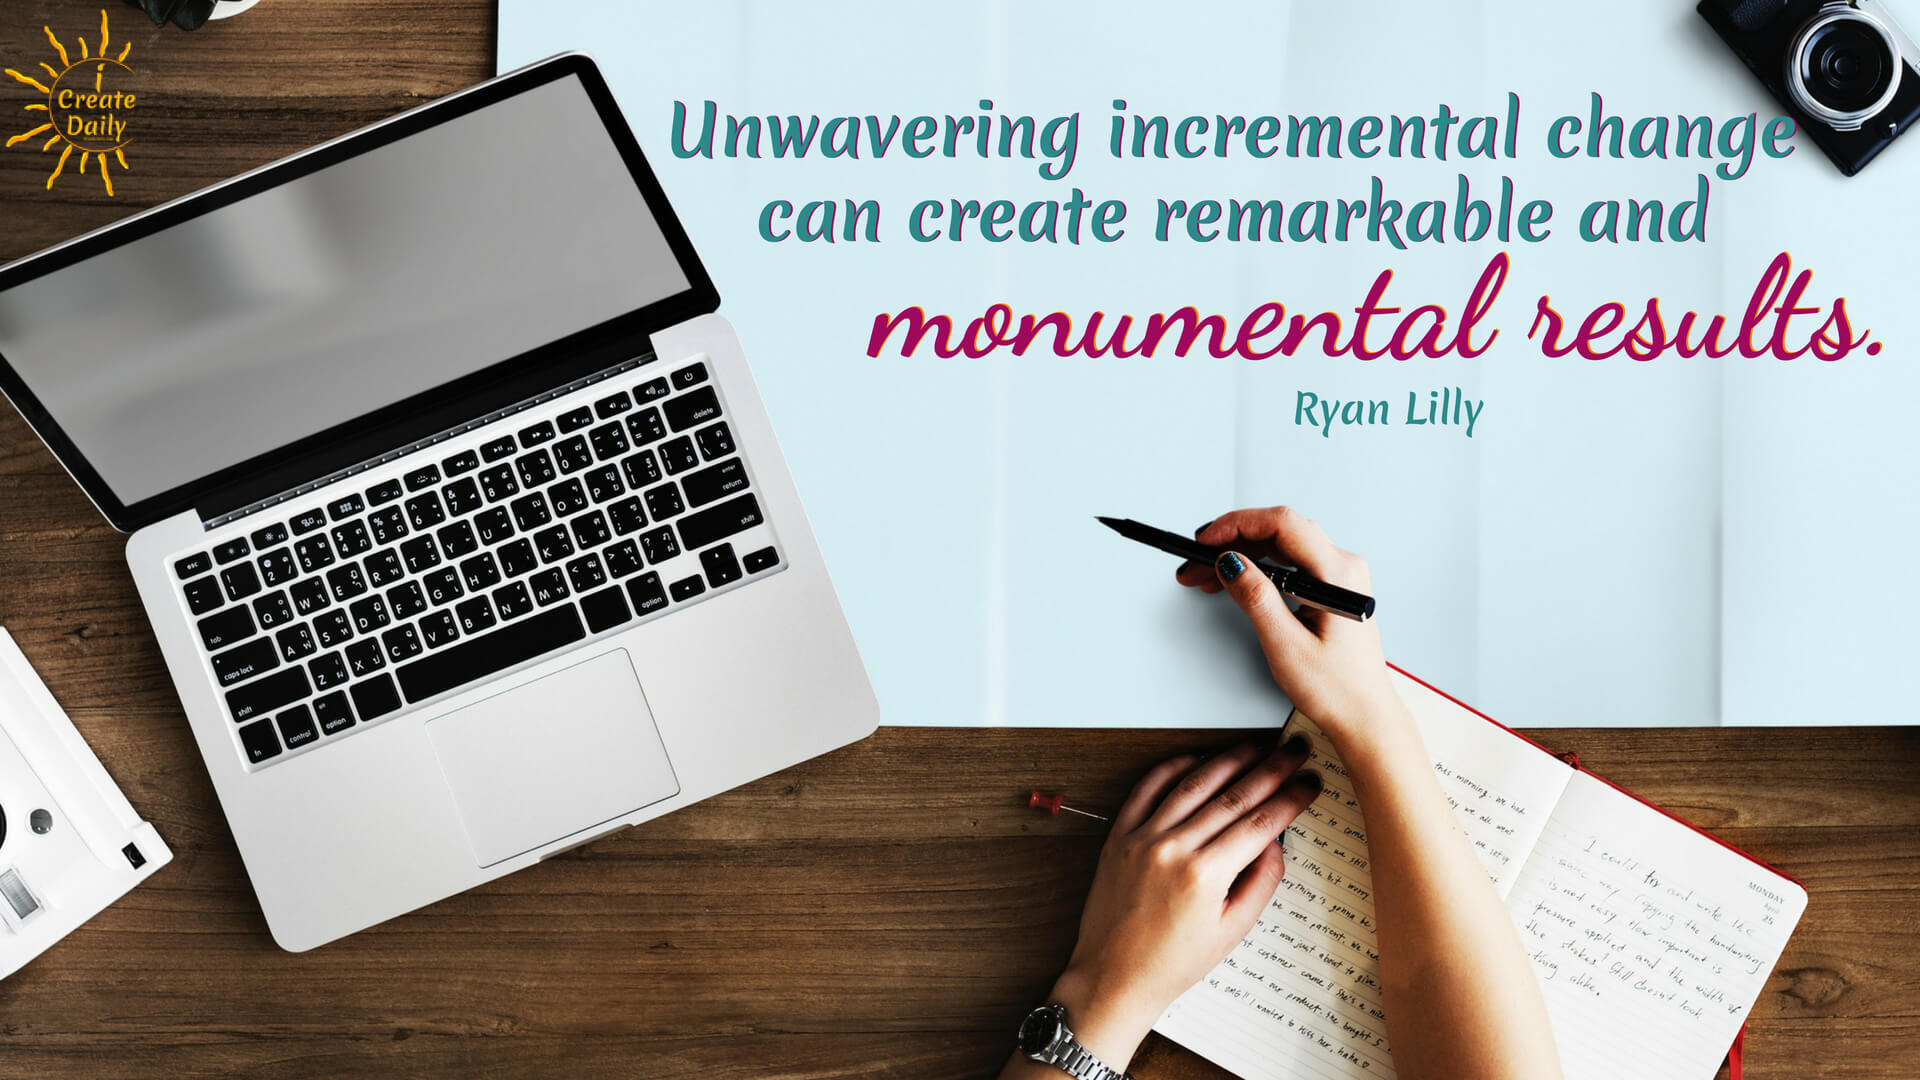 """Unwavering incremental change can create remarkable and monumental results.""  ~ Ryan Lilly, author, entrepreneur"